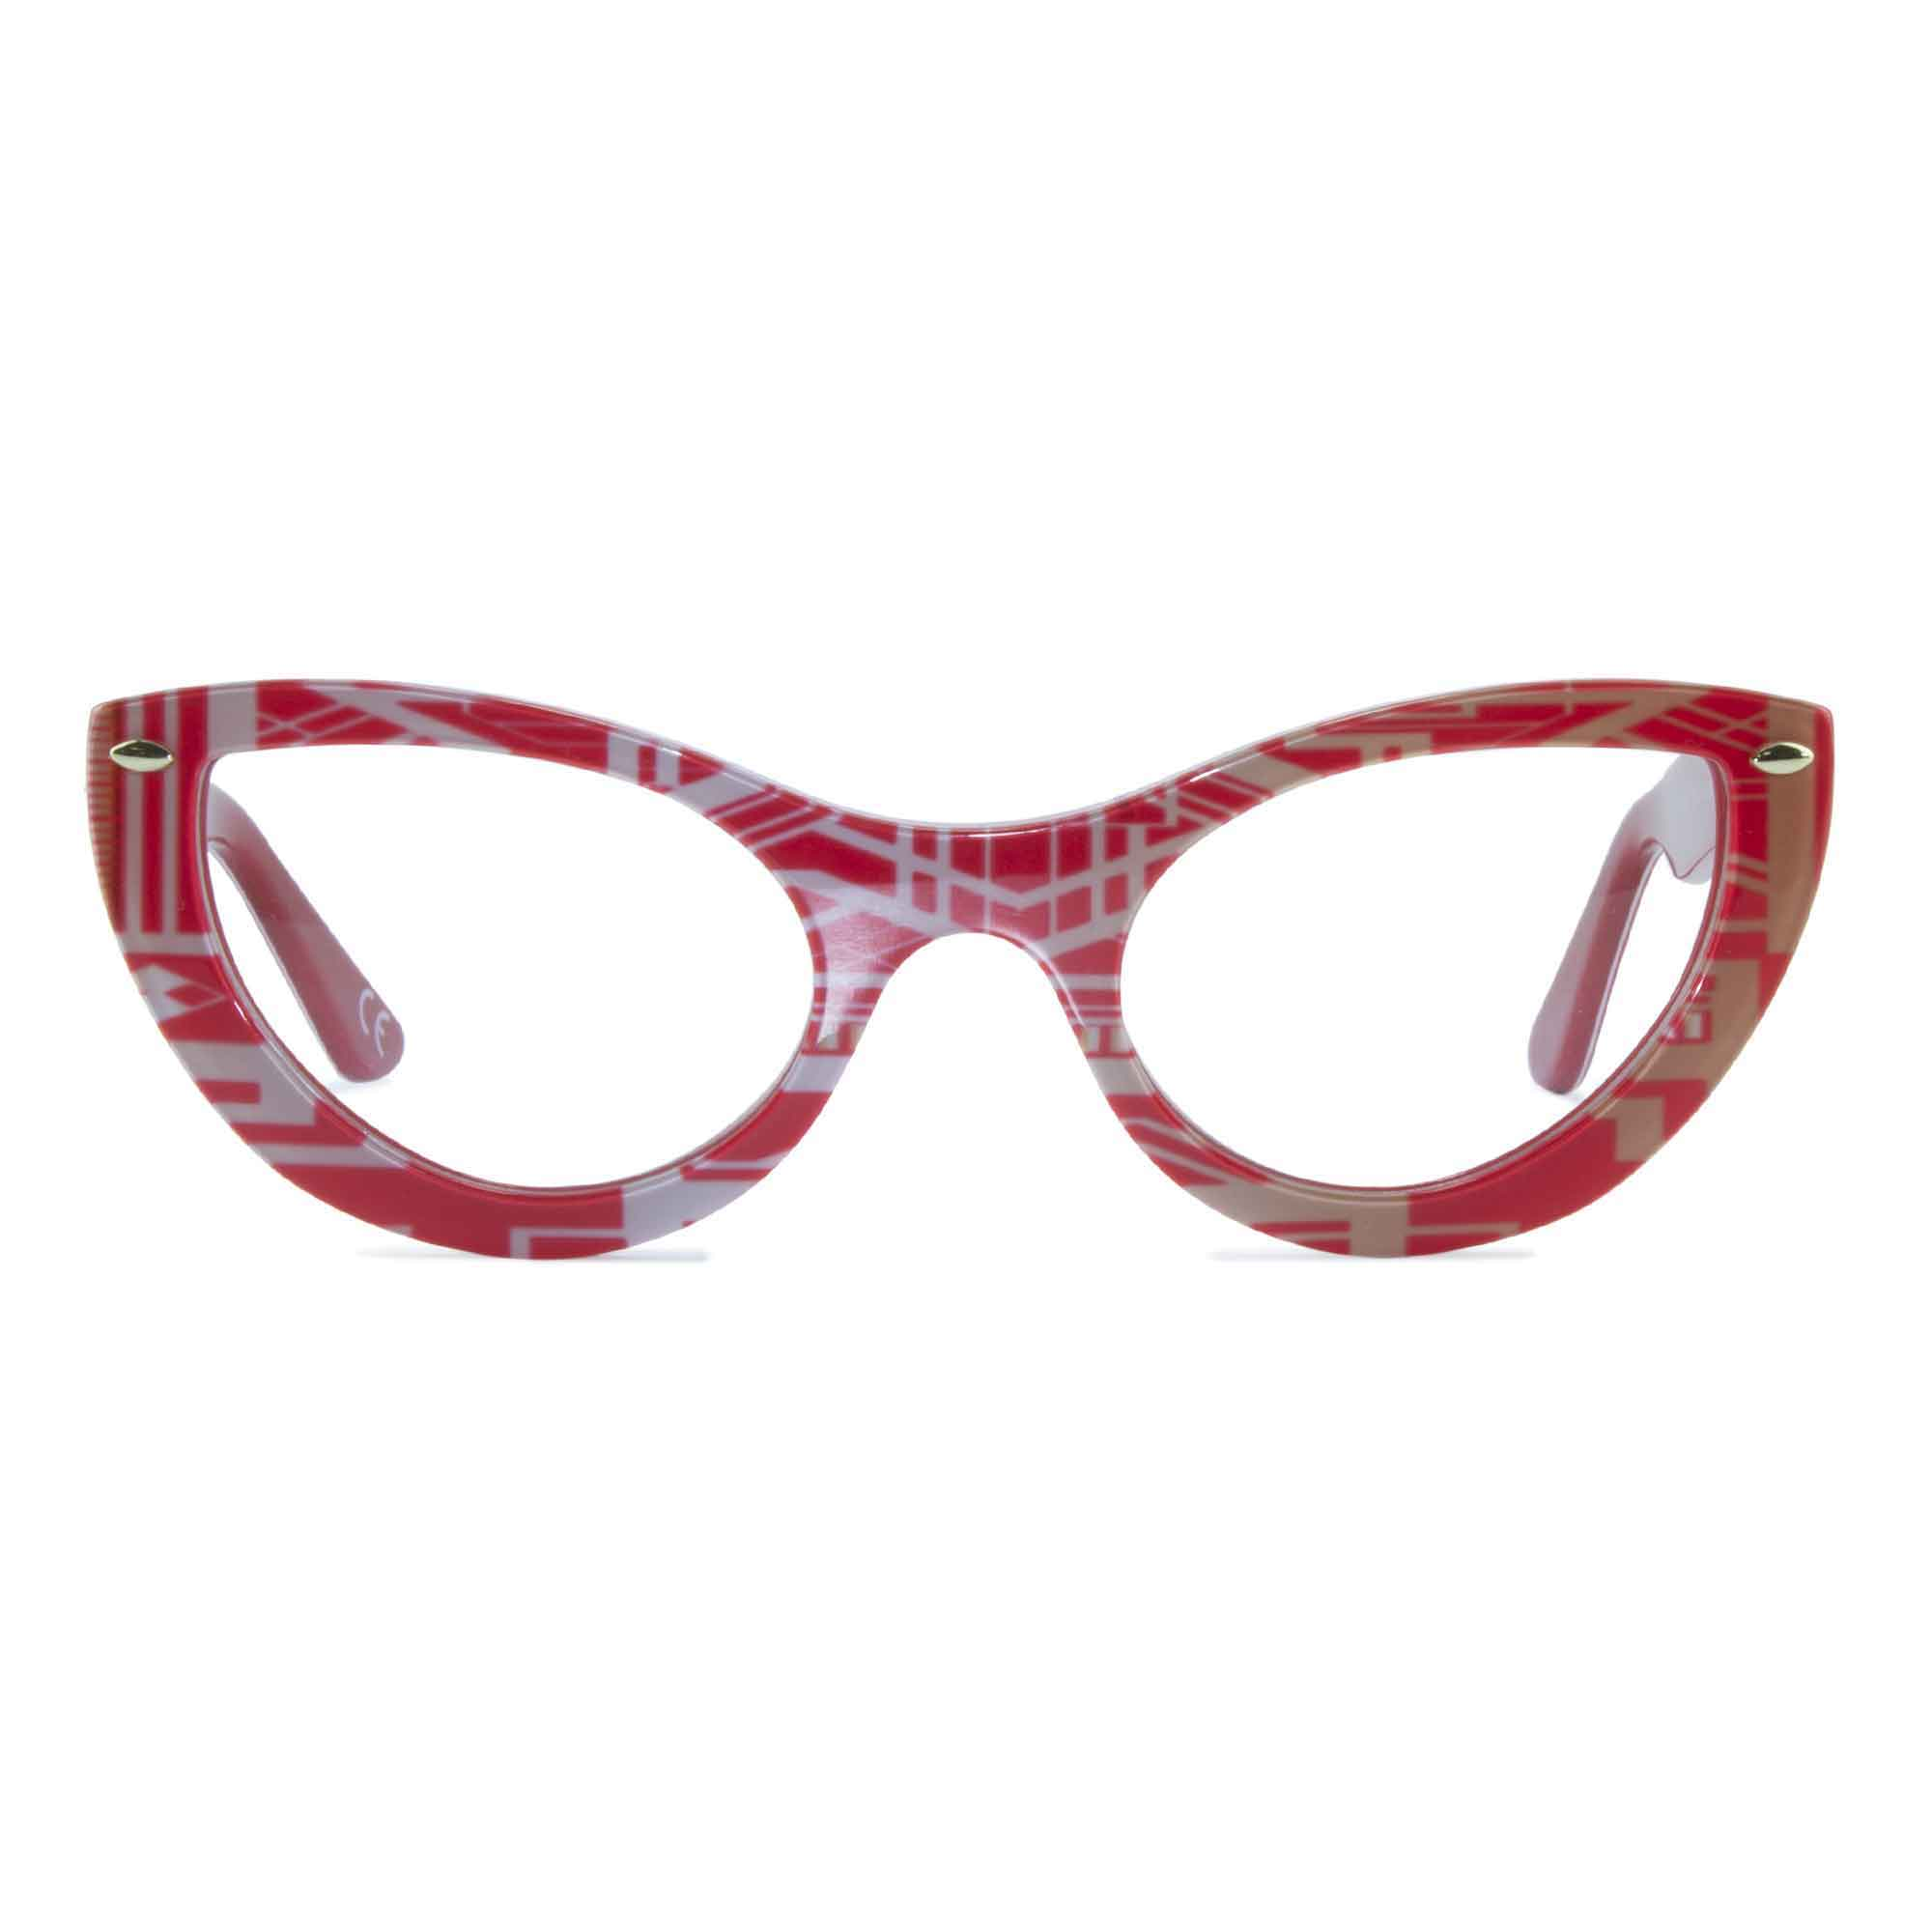 Joiuss gatsby red & gold glasses frame